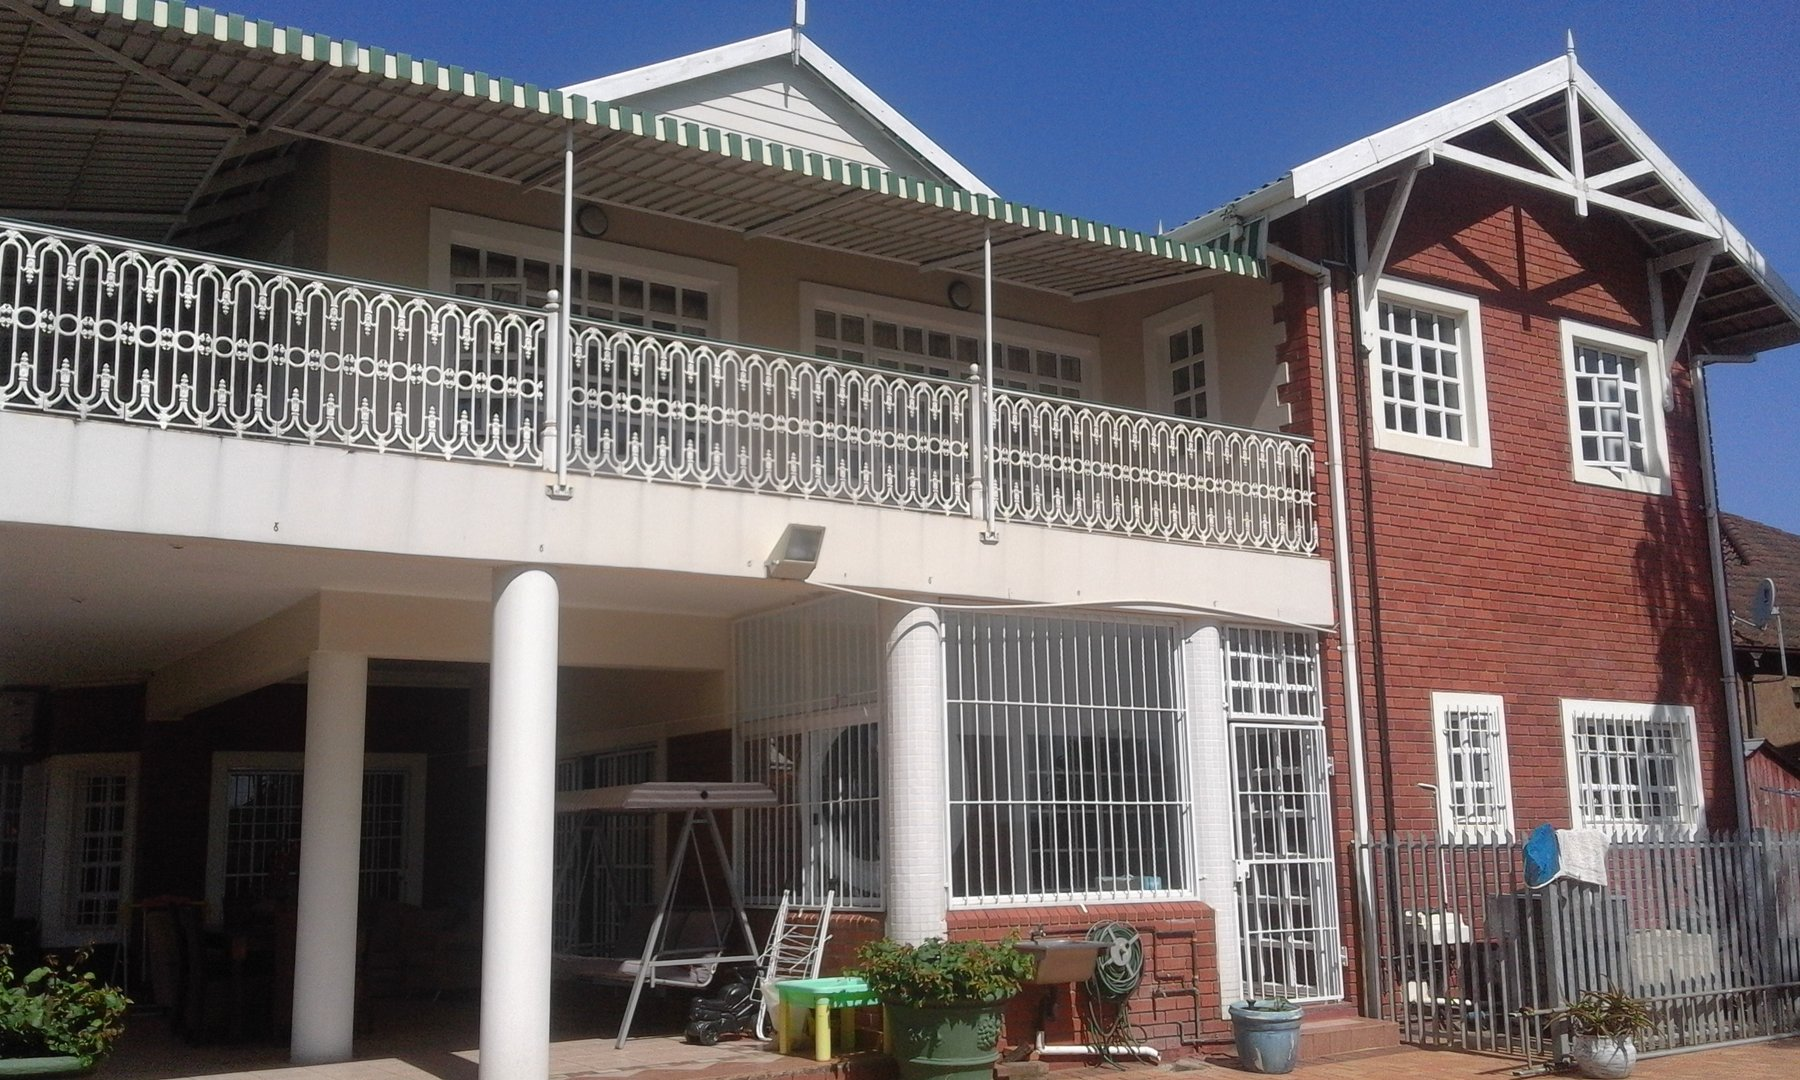 6 BedroomHouse For Sale In Mount Edgecombe